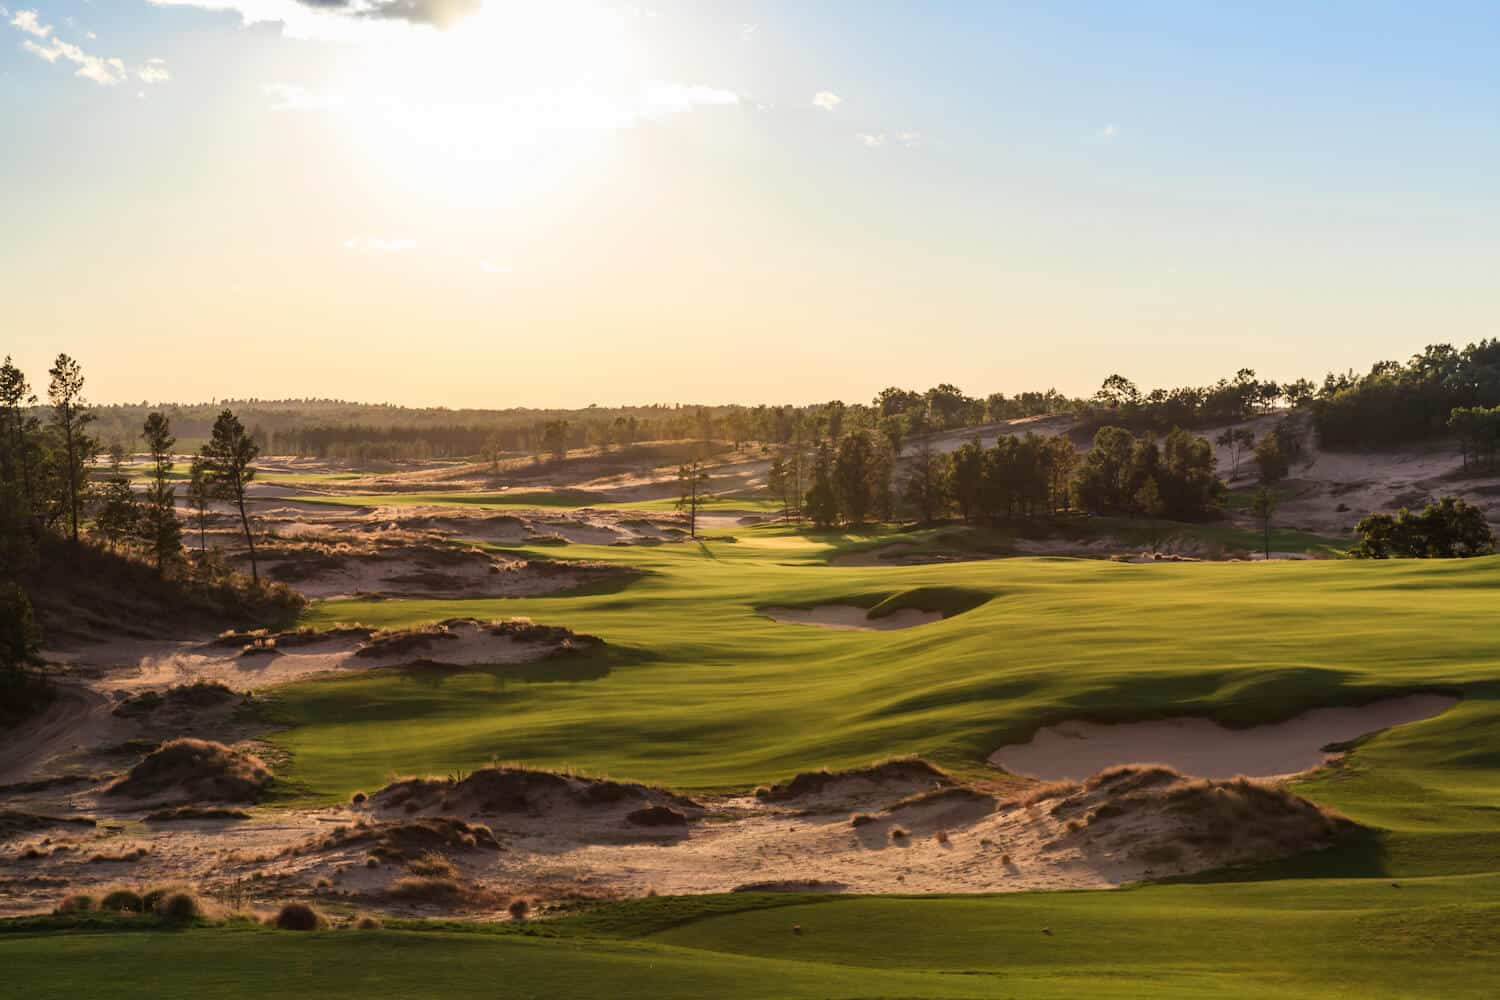 Sand Valley: Bandon in the Heartland